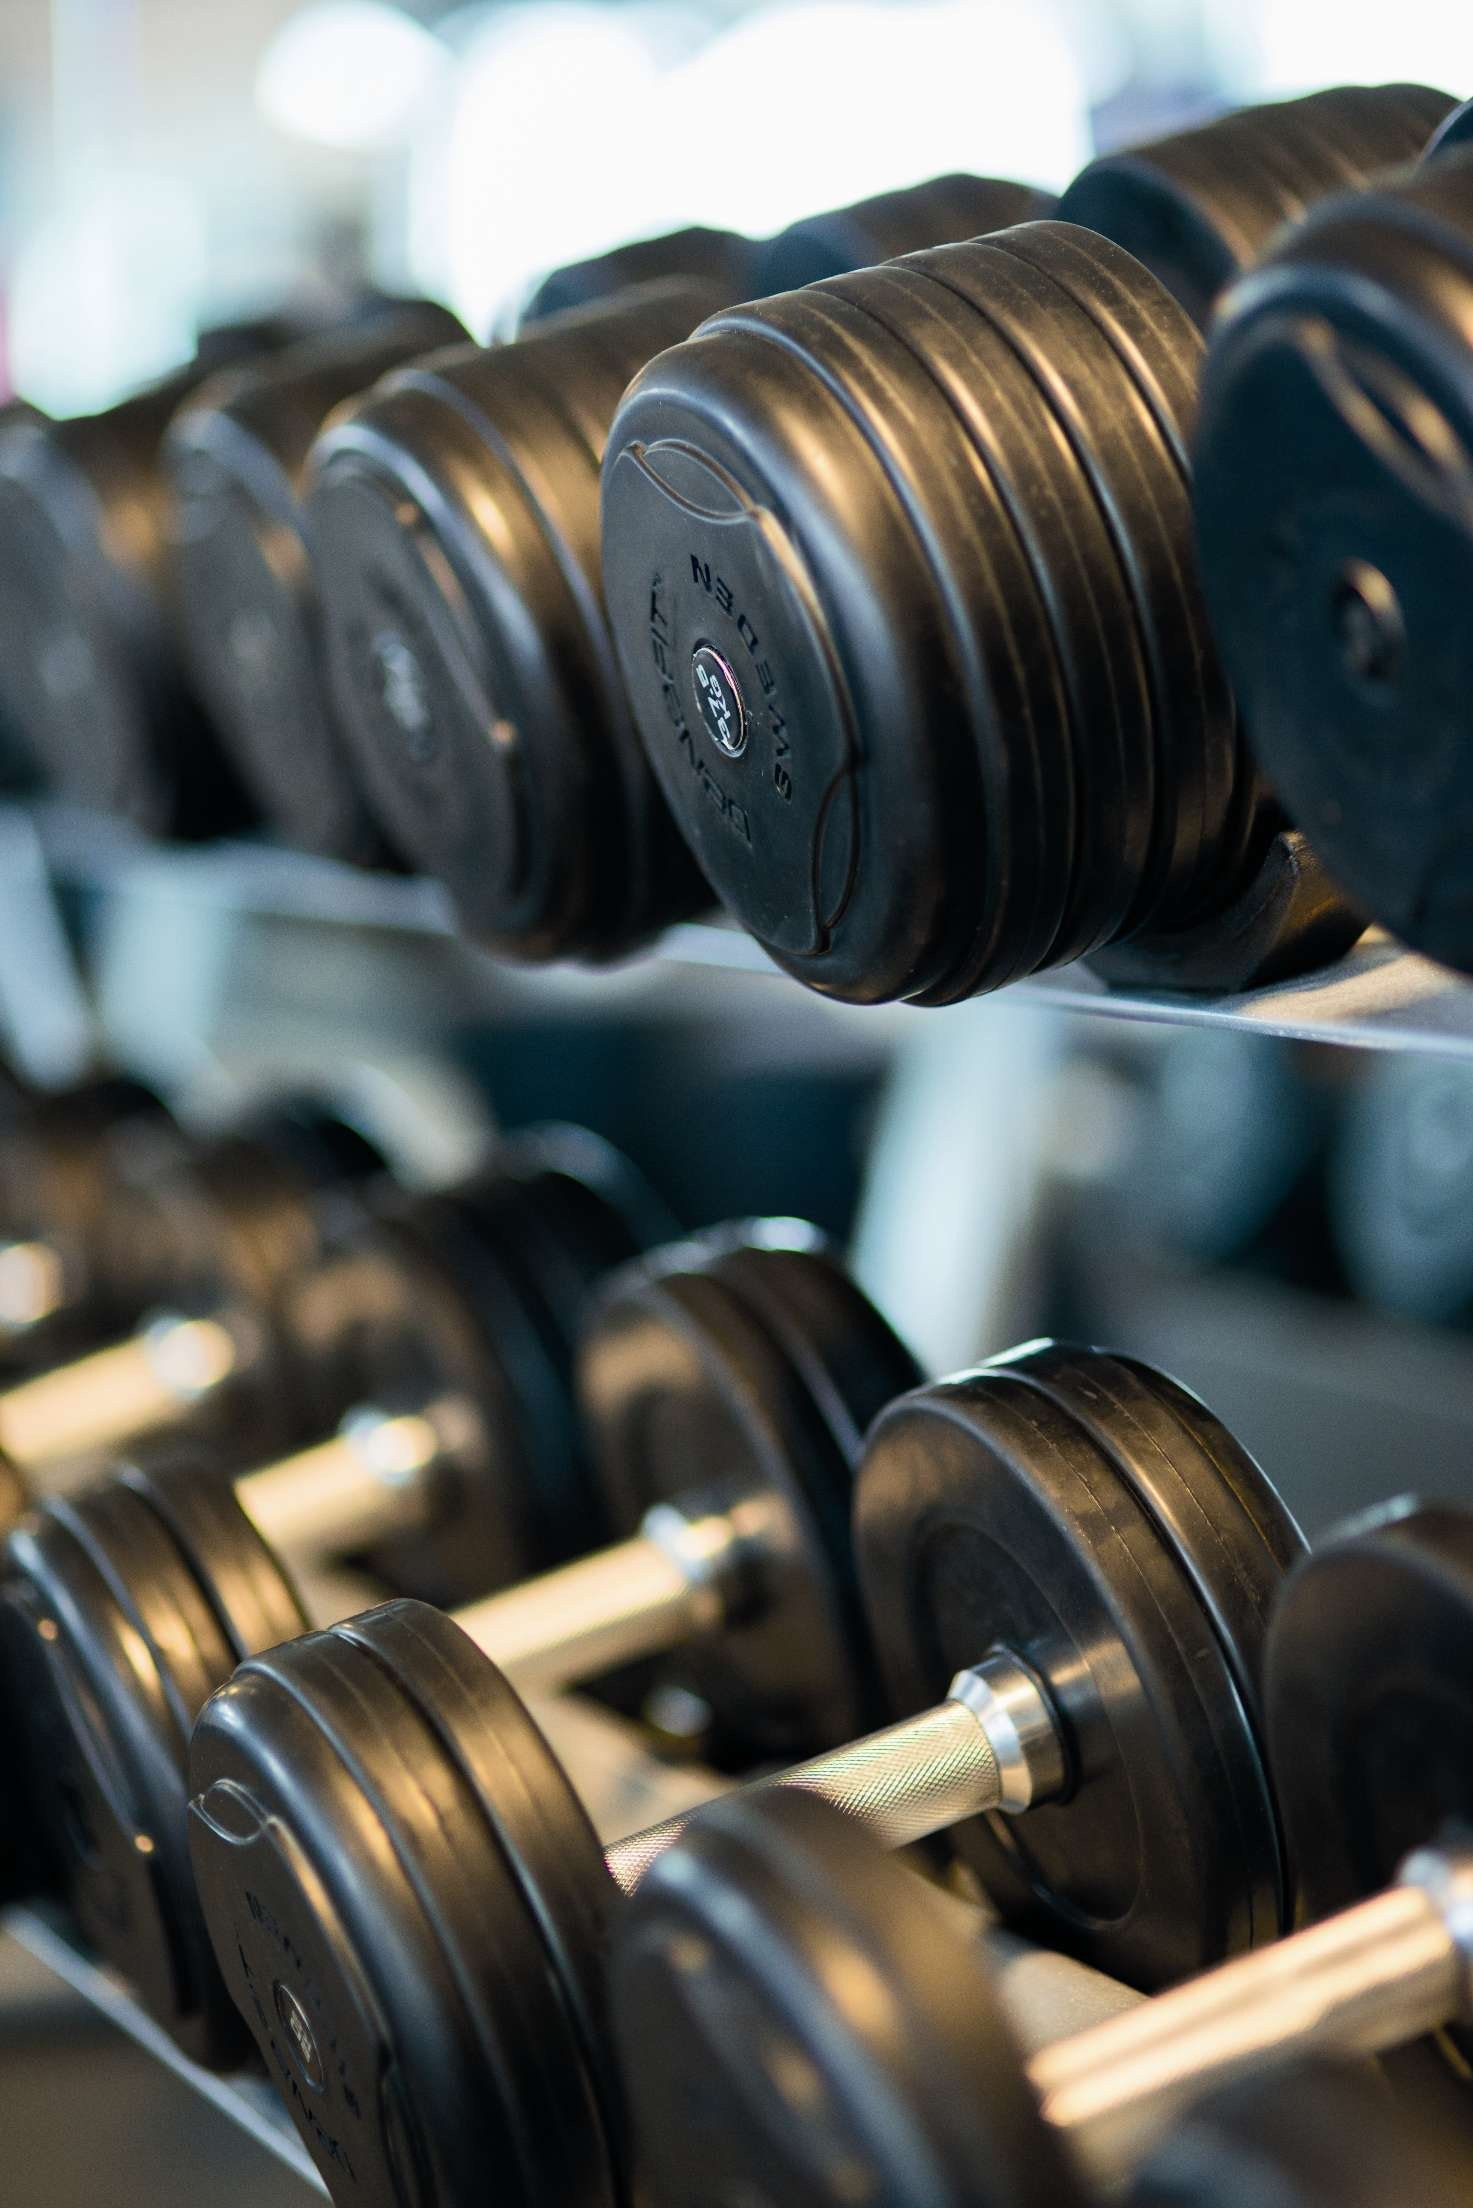 338/Vendome/Services/bodybuilding-close-up-dumbbells-equipment-260352.jpg